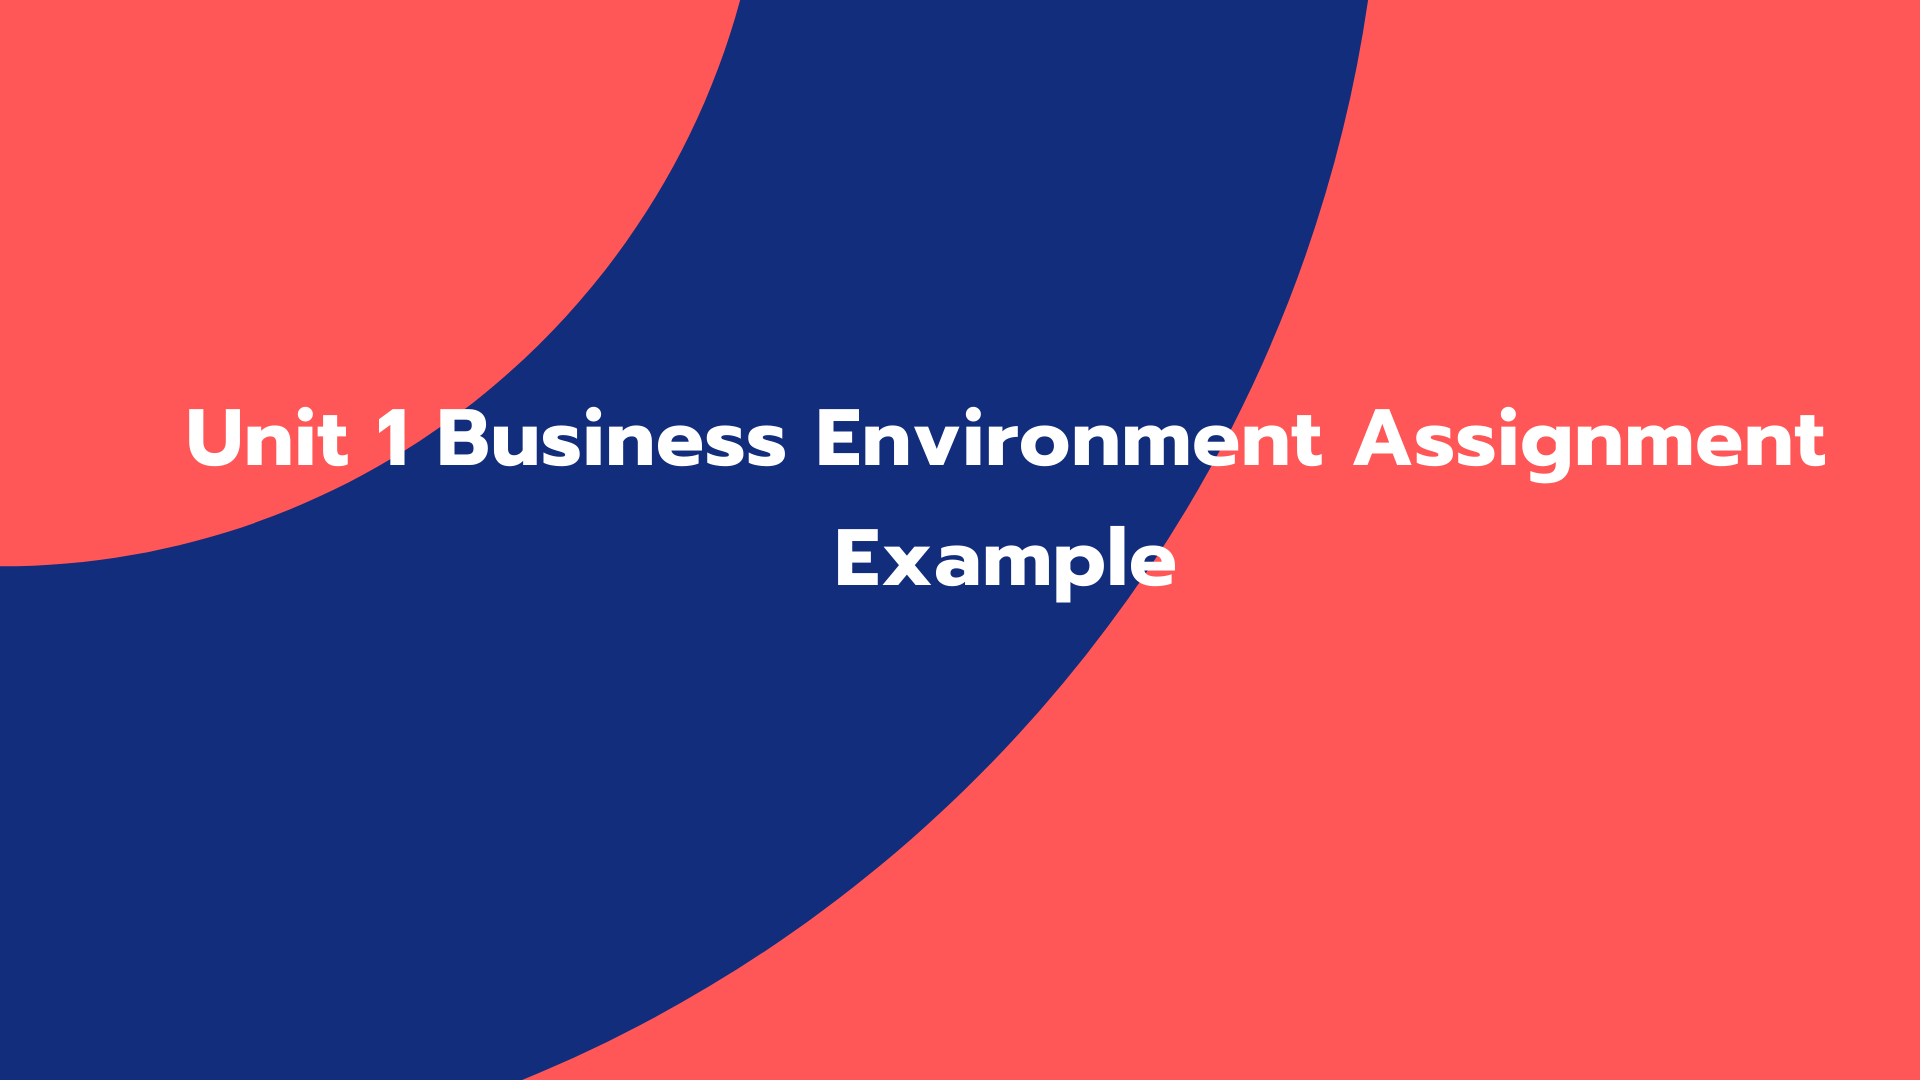 Unit 1 Business Environment Assignment Example